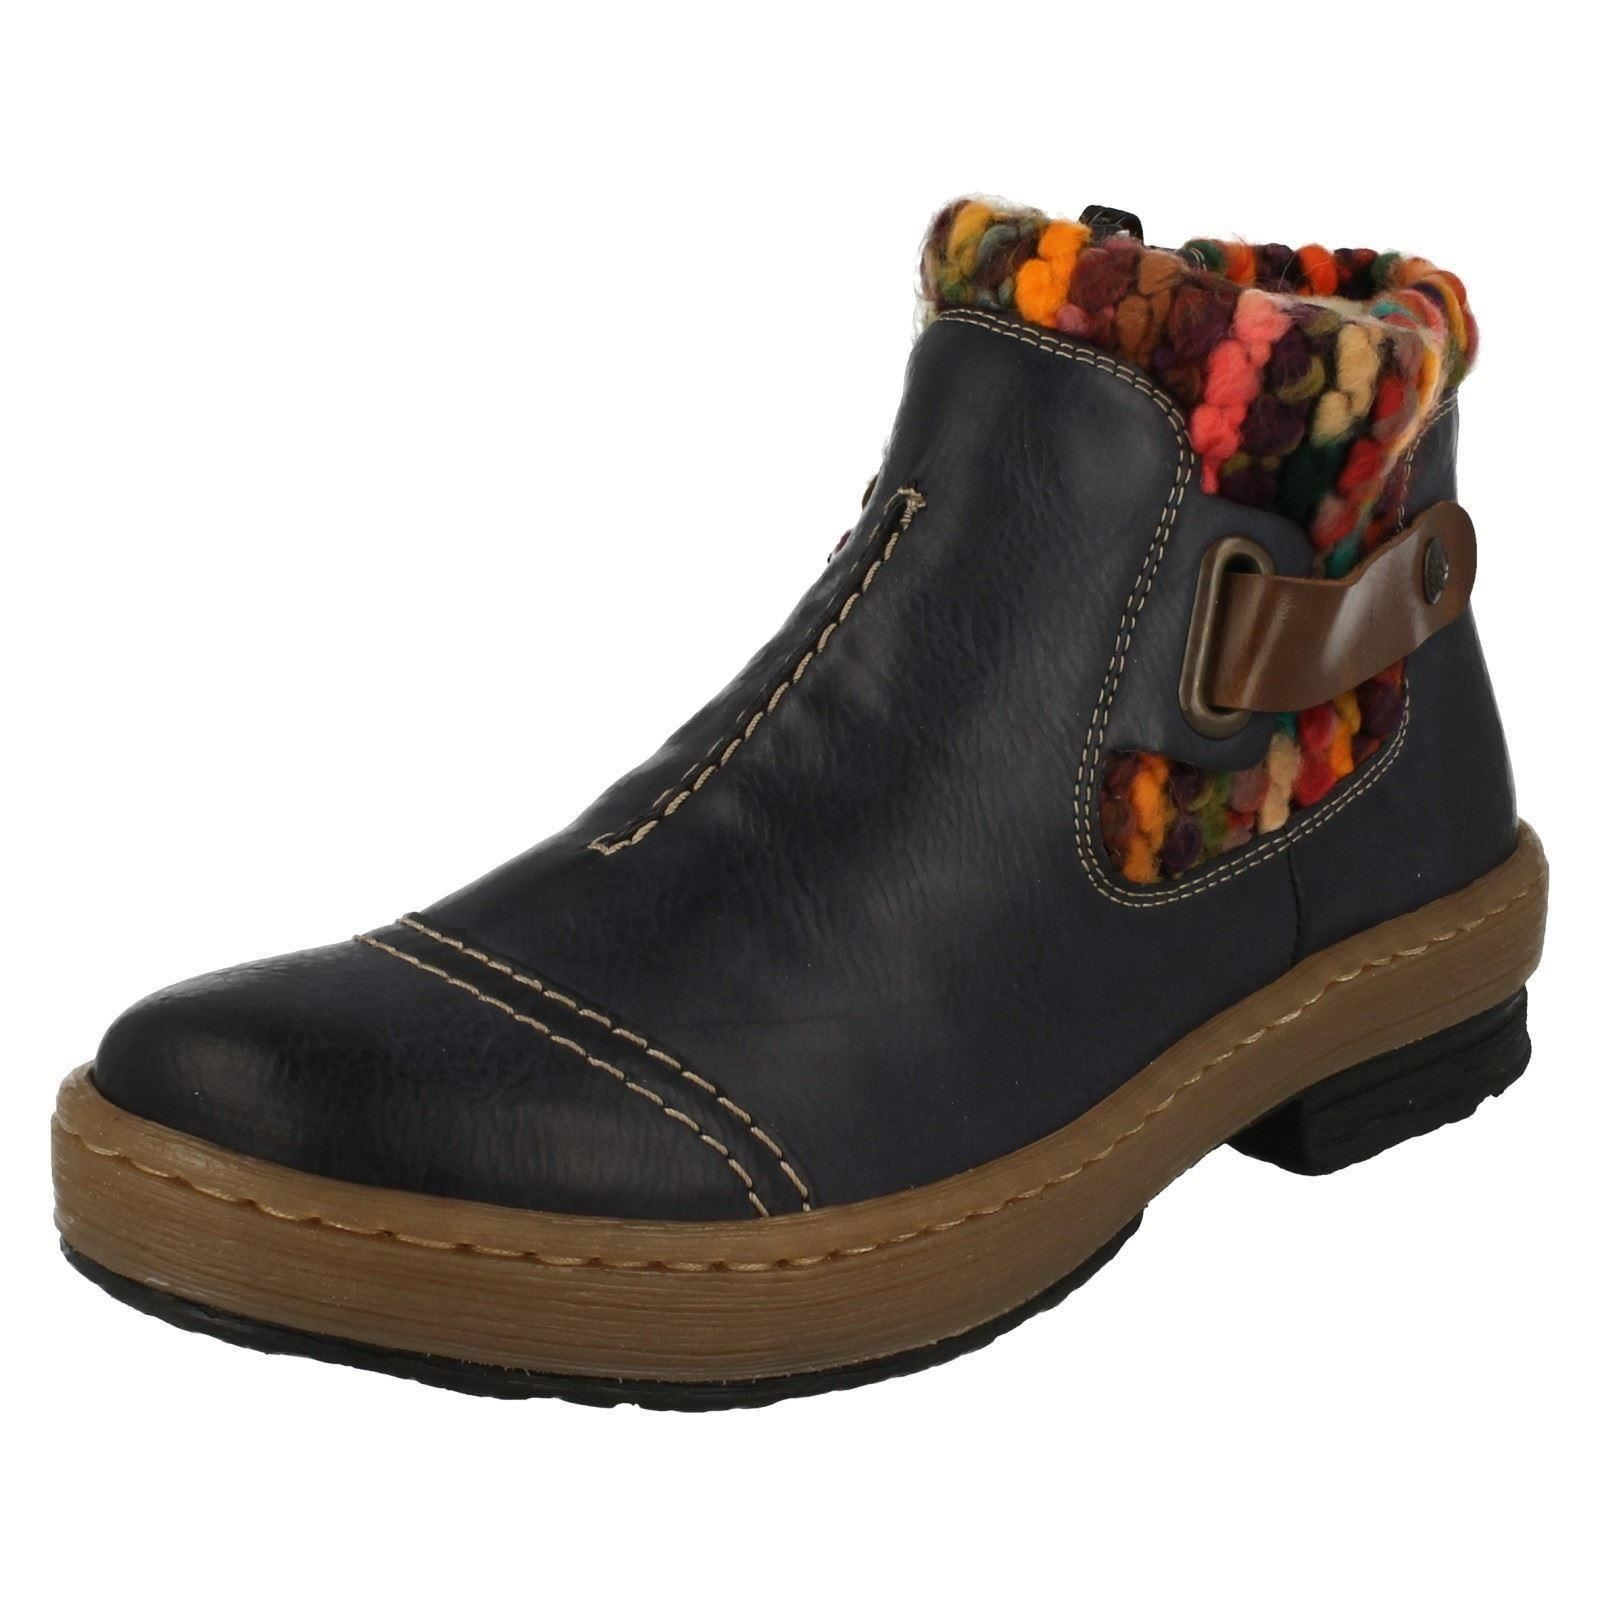 Model Lotus Bowler Womens Casual Ankle Boots - Women From Charles Clinkard UK